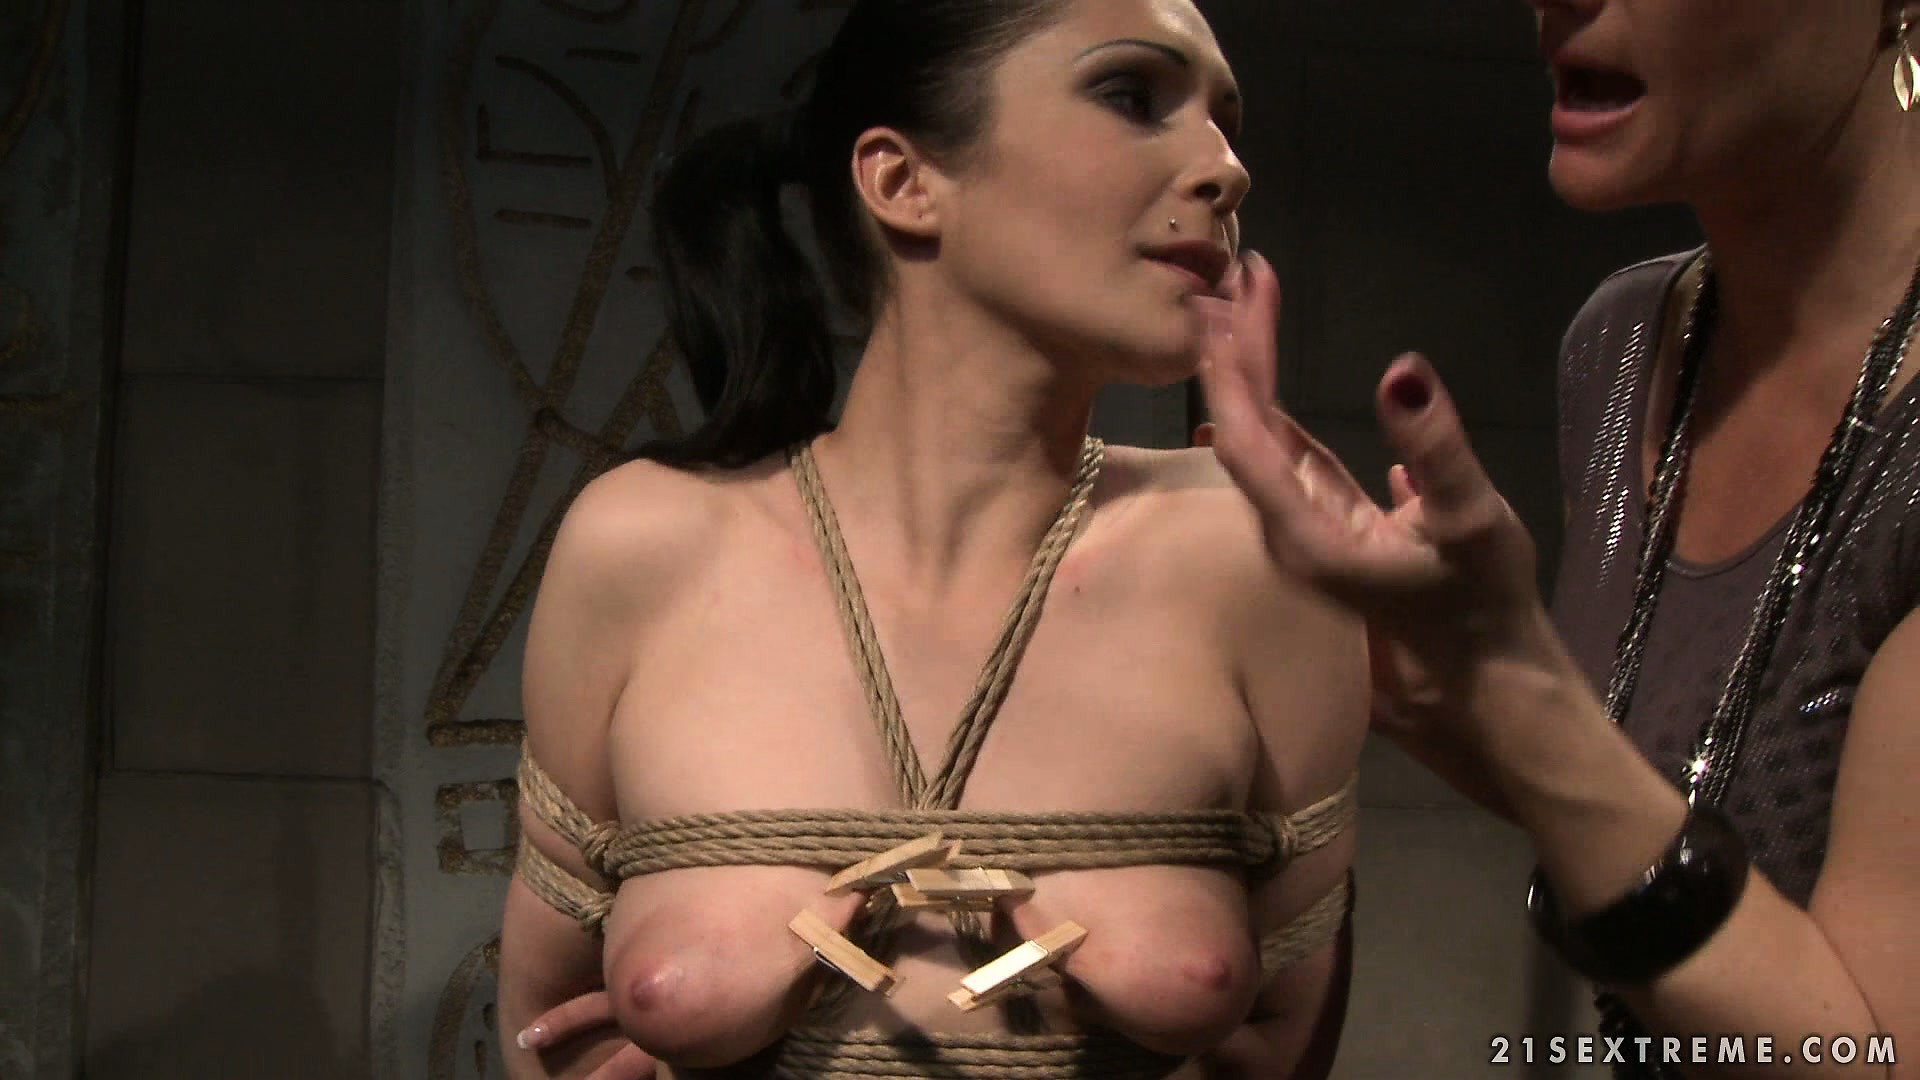 Porno Video of Katy Puts Clothespins All Over Carrmen And Tweaks Her Nipples